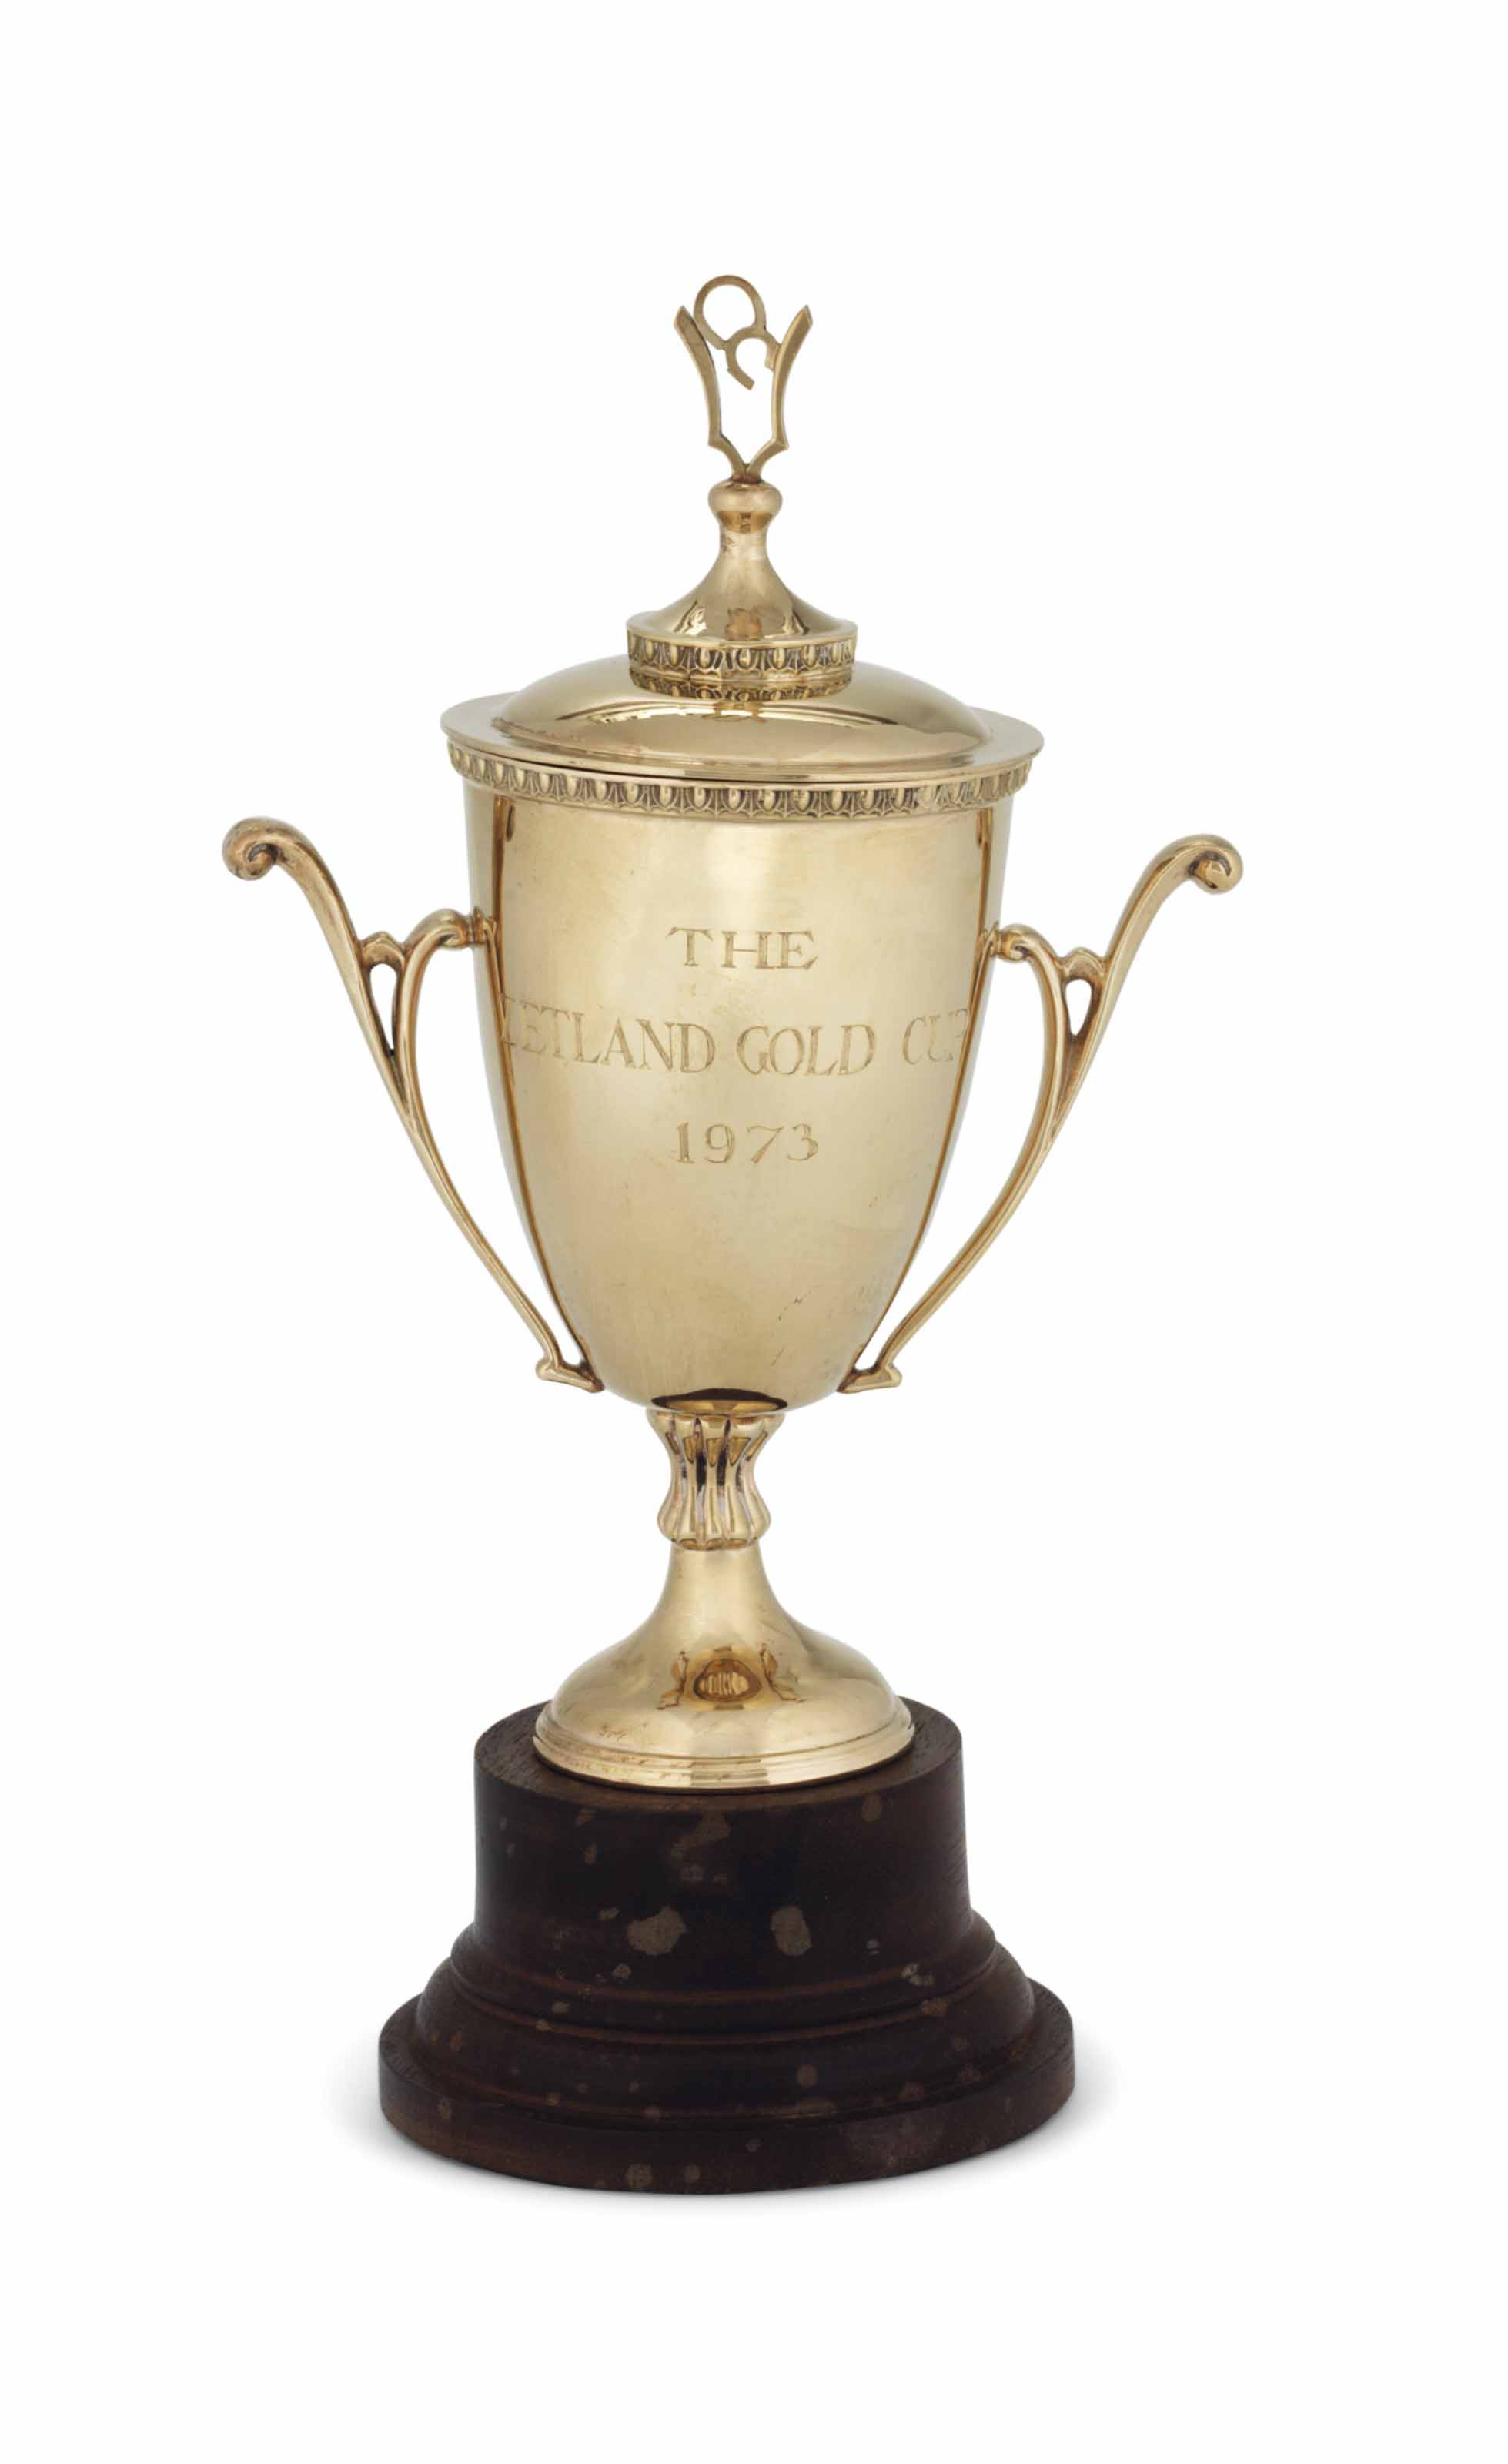 AN ELIZABETH II GOLD CUP AND COVER